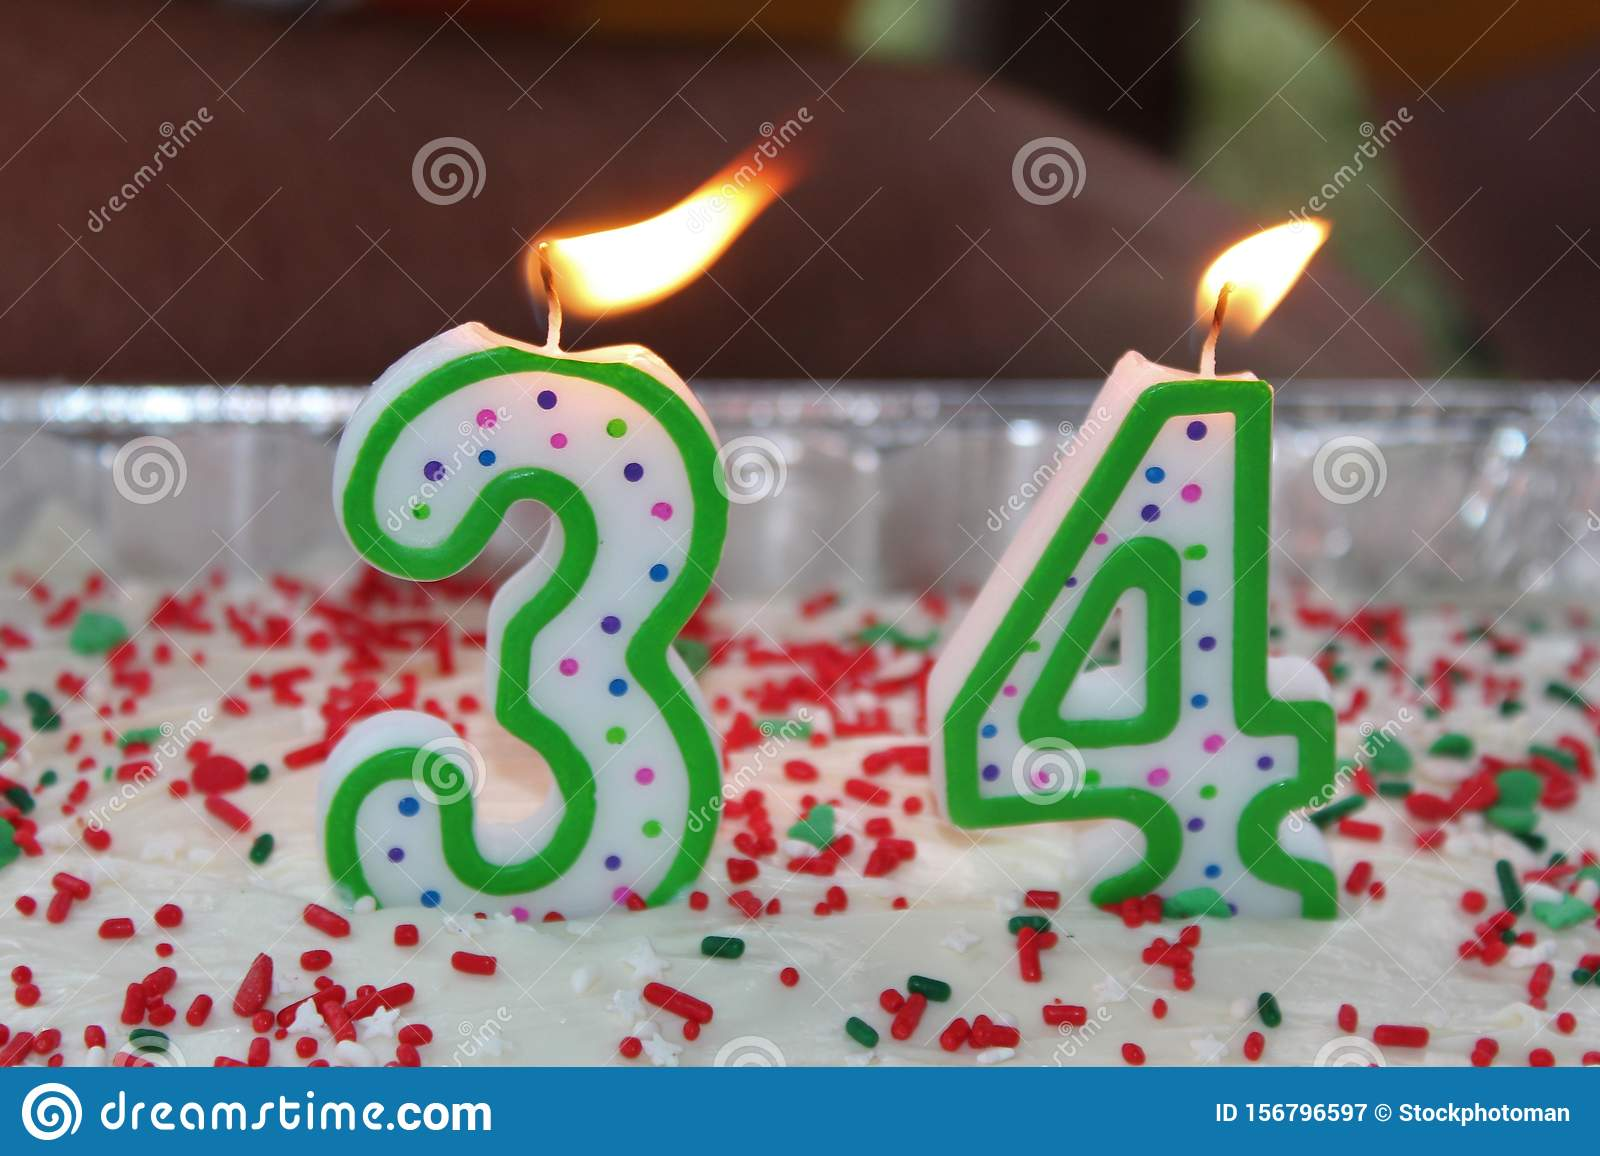 Stupendous Birthday Cake In An Aluminum Pan With A 34 With Flaming Candles Personalised Birthday Cards Cominlily Jamesorg